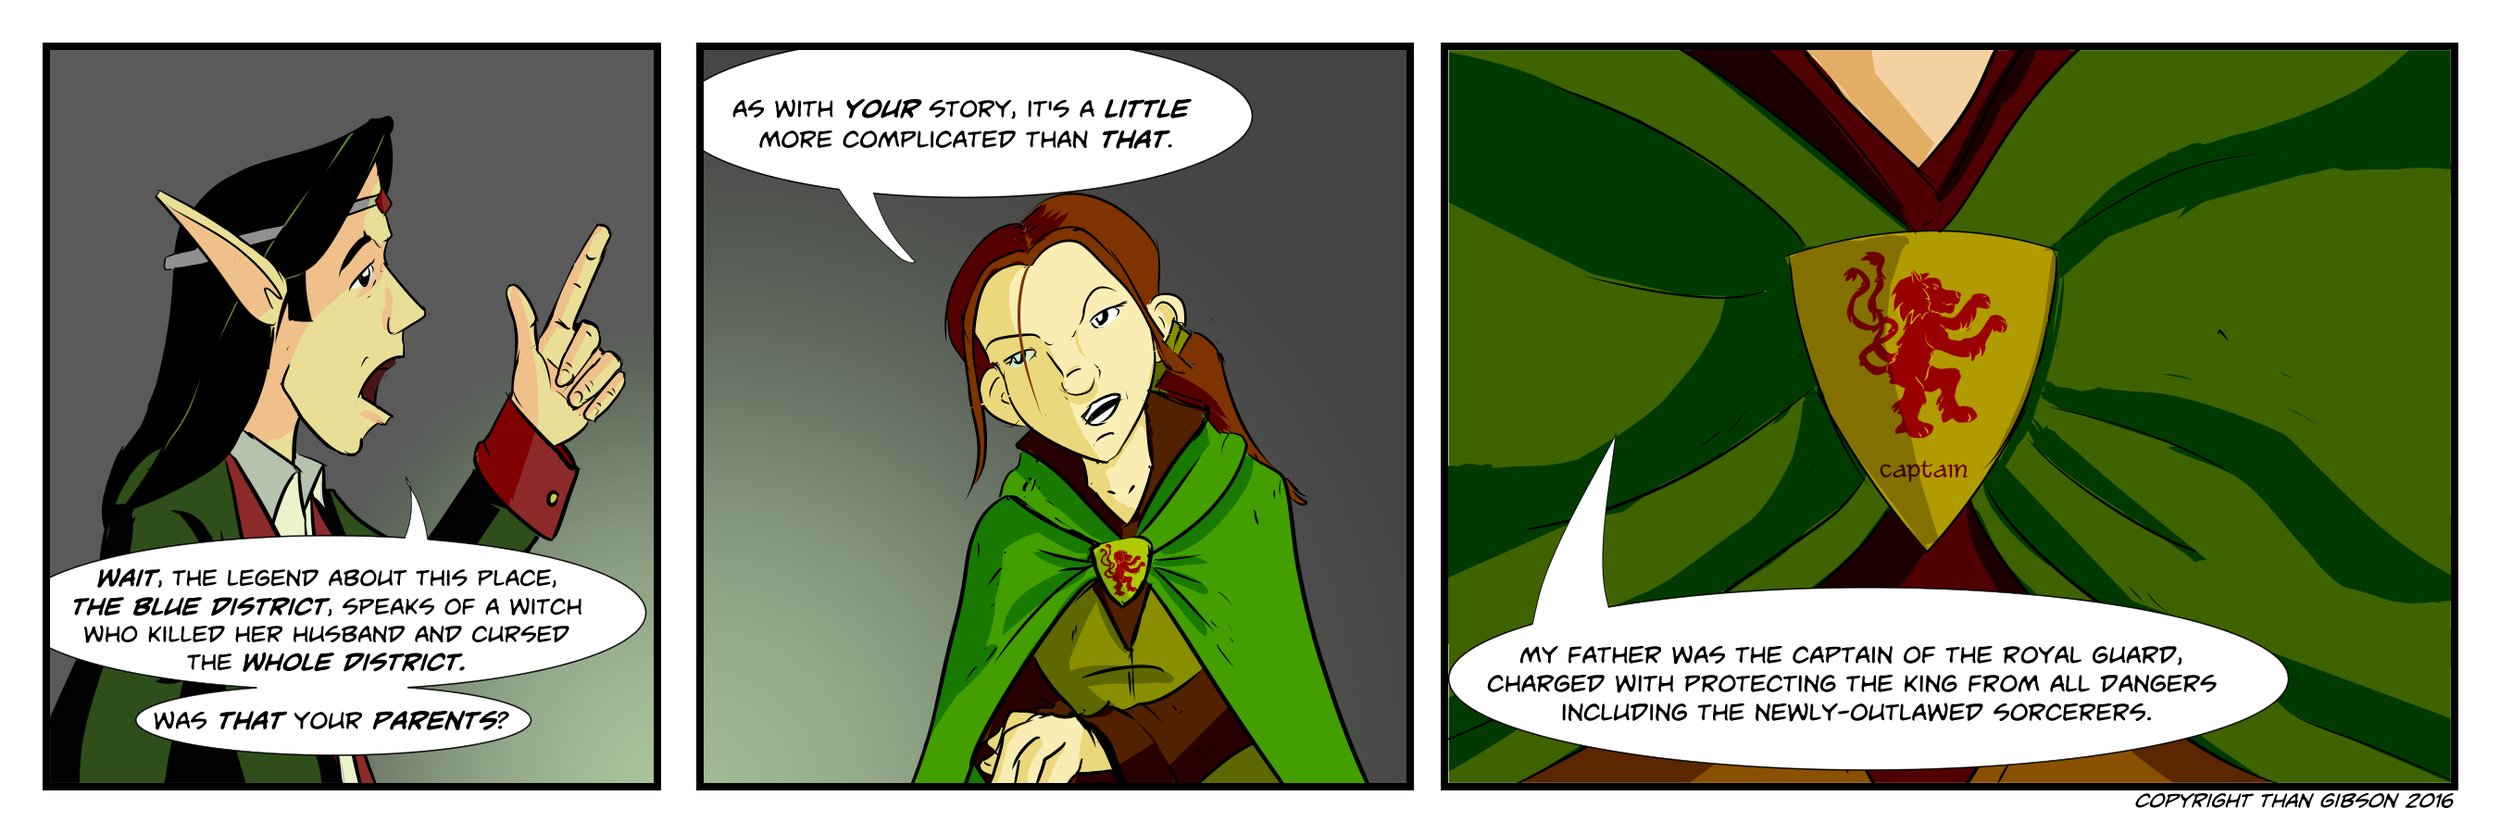 CHRONICLE: A CHRONICLE OF THIEVES - CHAPTER 3, STRIP 14